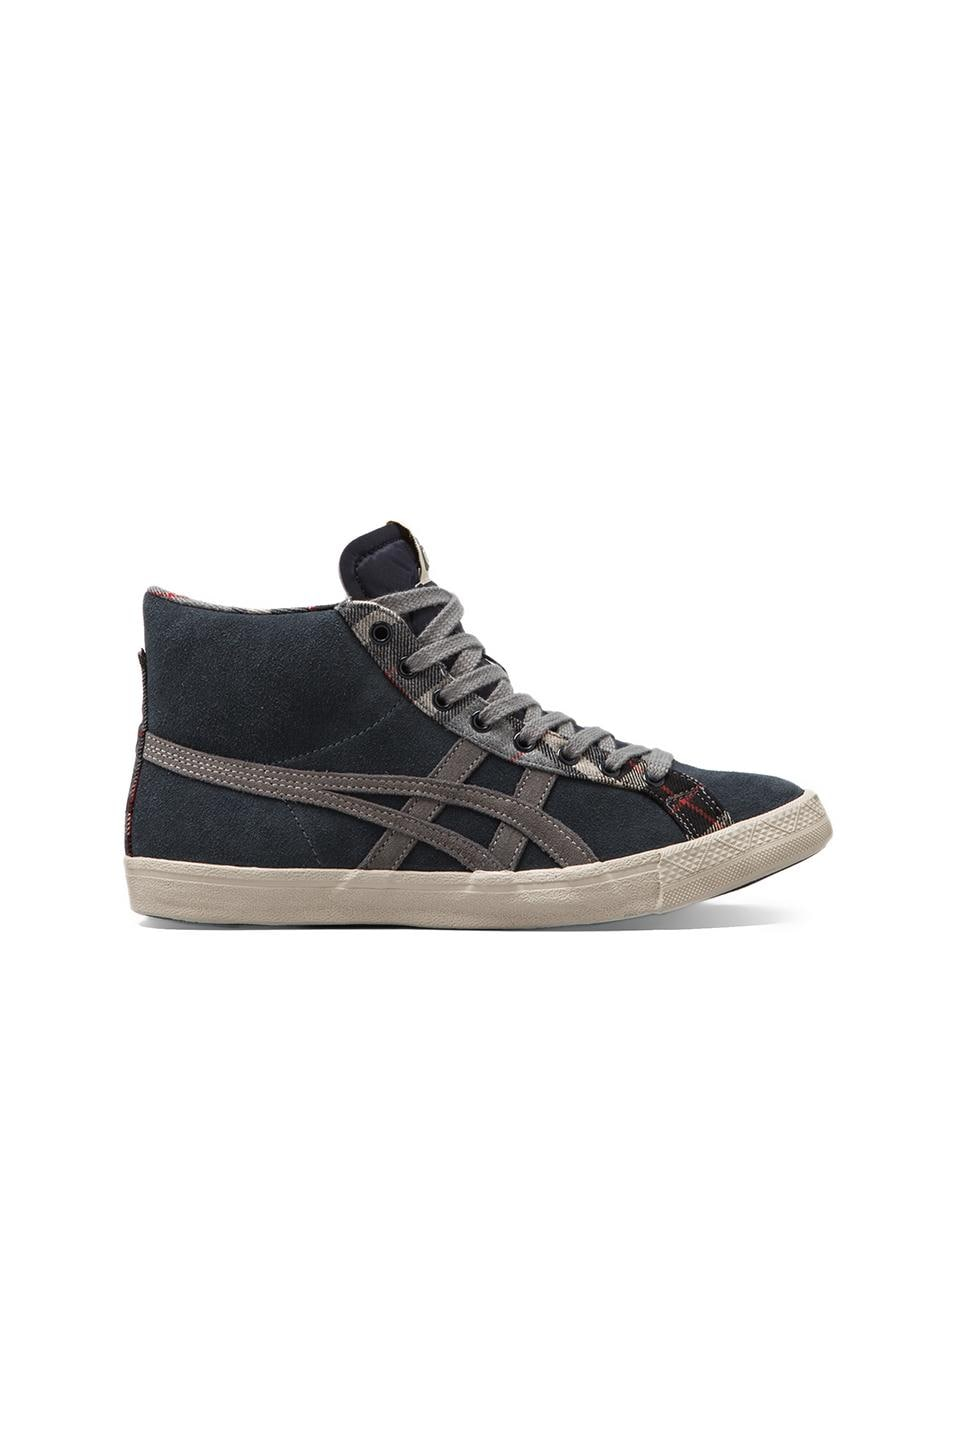 Onitsuka Tiger Fabre BL-L in Dark Navy/Dark Grey